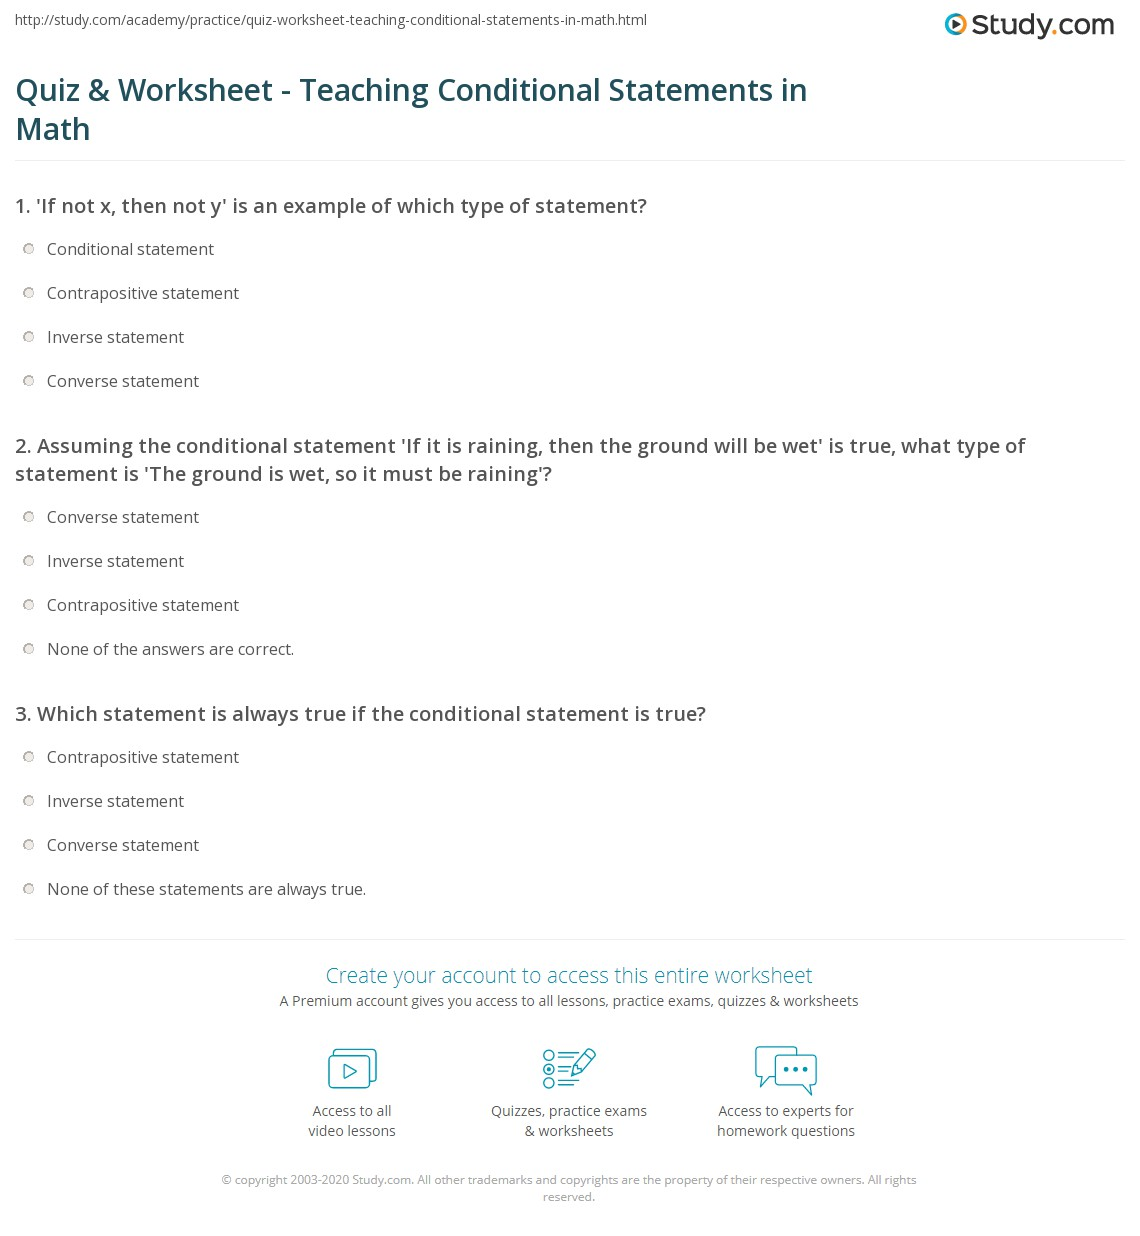 Quiz & Worksheet - Teaching Conditional Statements in Math | Study.com